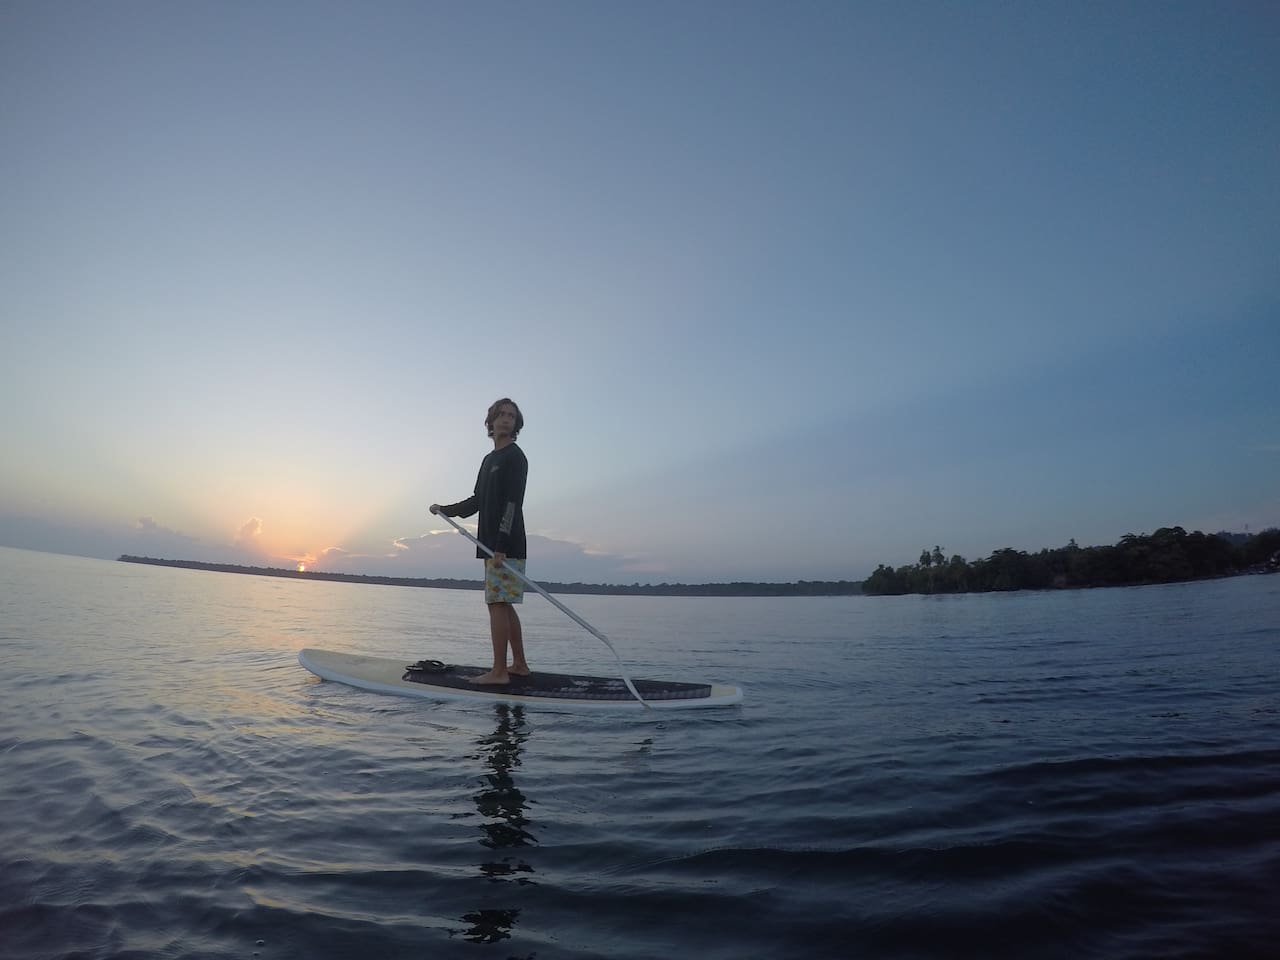 Morning paddle to watch the sunrise with my son, he still made it to school on time.